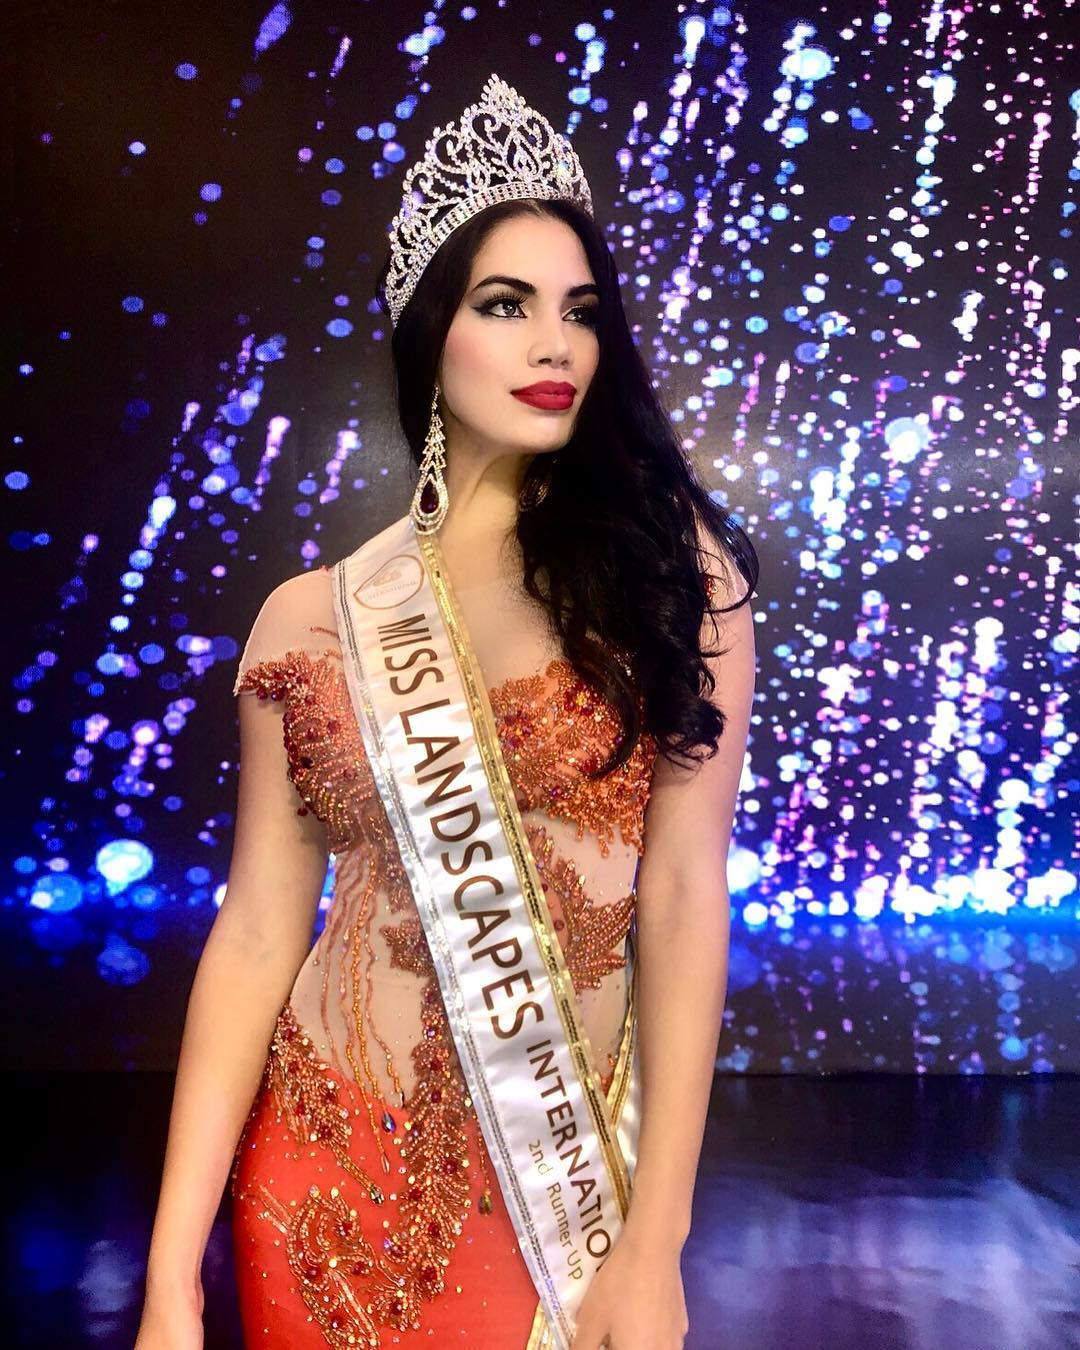 samantha batallanos, 3rd runner-up de miss landscapes international 2018. - Página 2 34983312